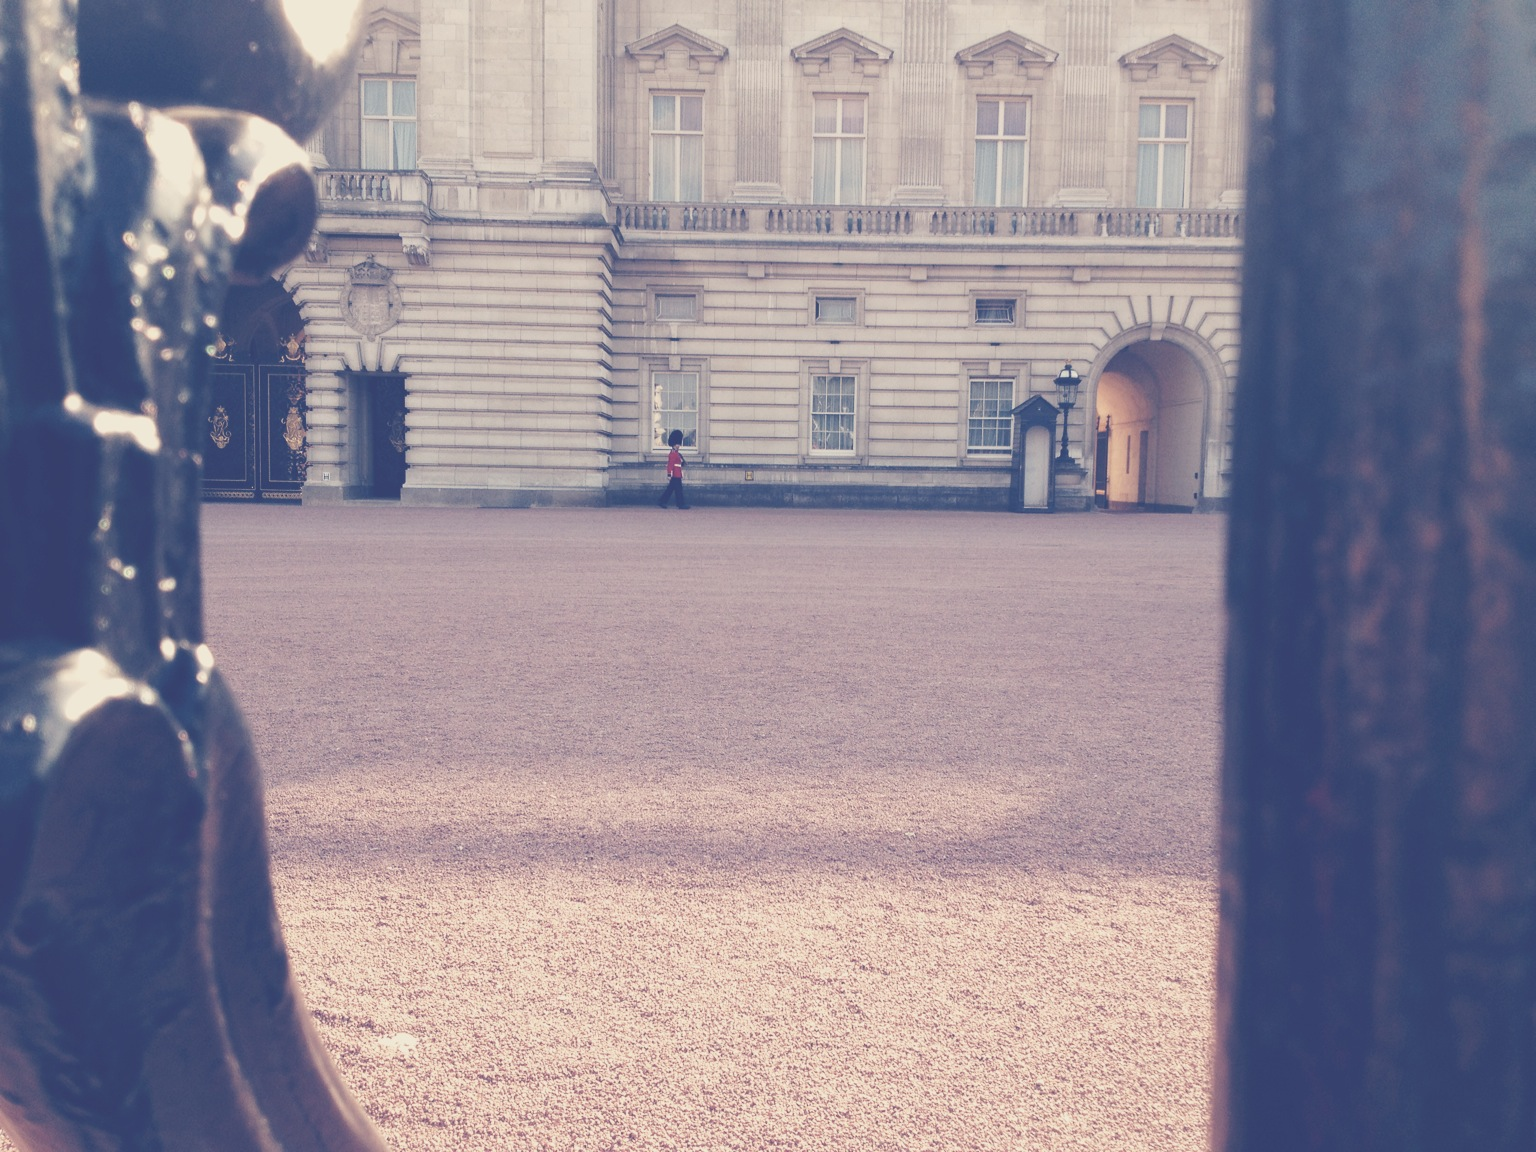 Guard, Buckingham Palace